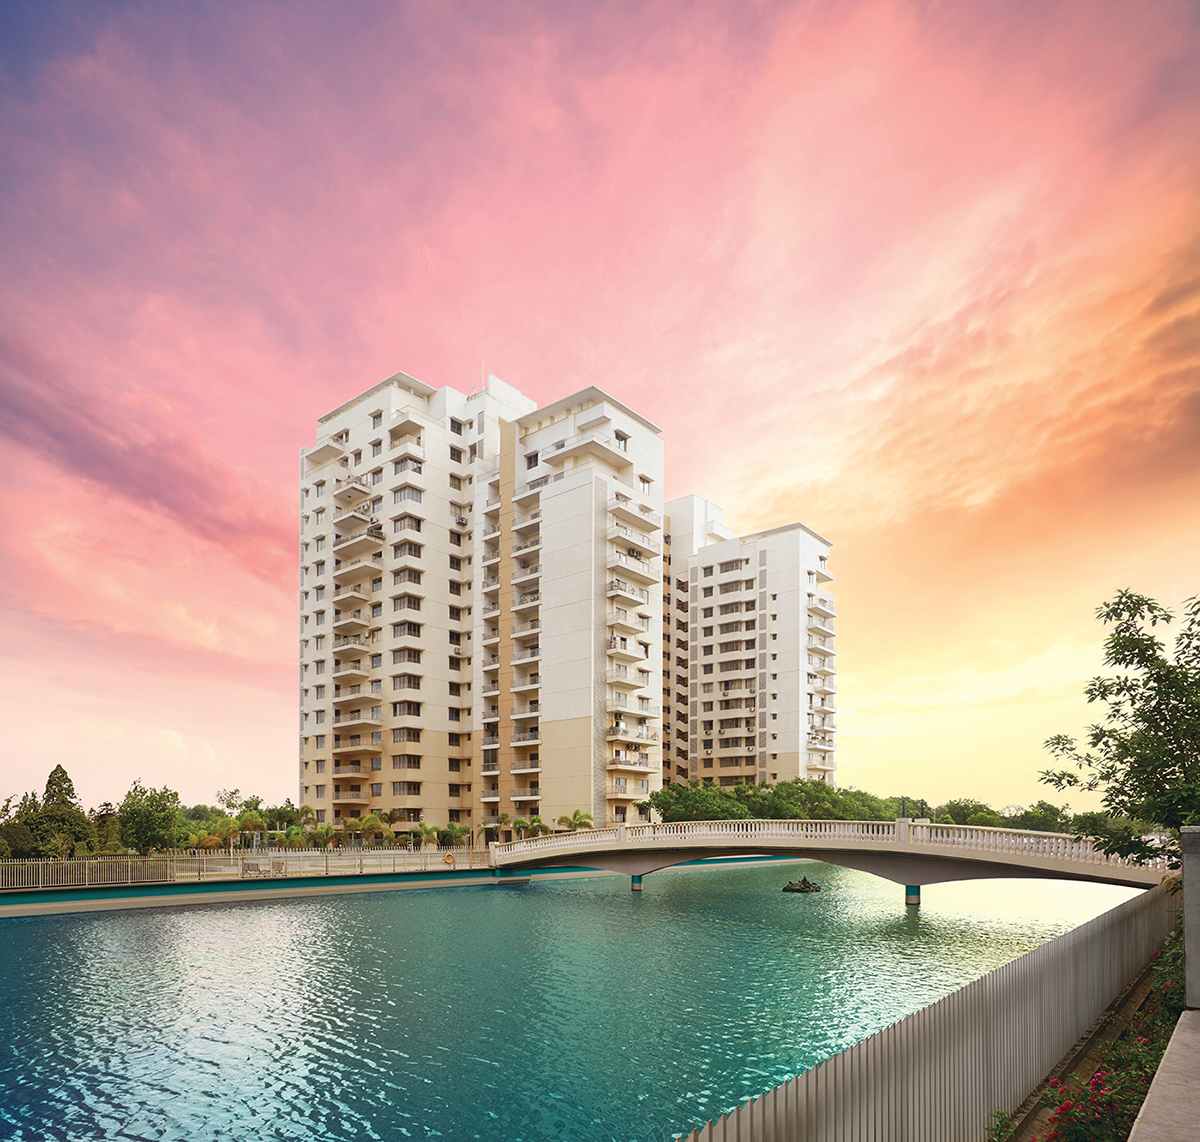 Sophisctication and Luxury in 3-4 BHK Flats in Ahmedabad